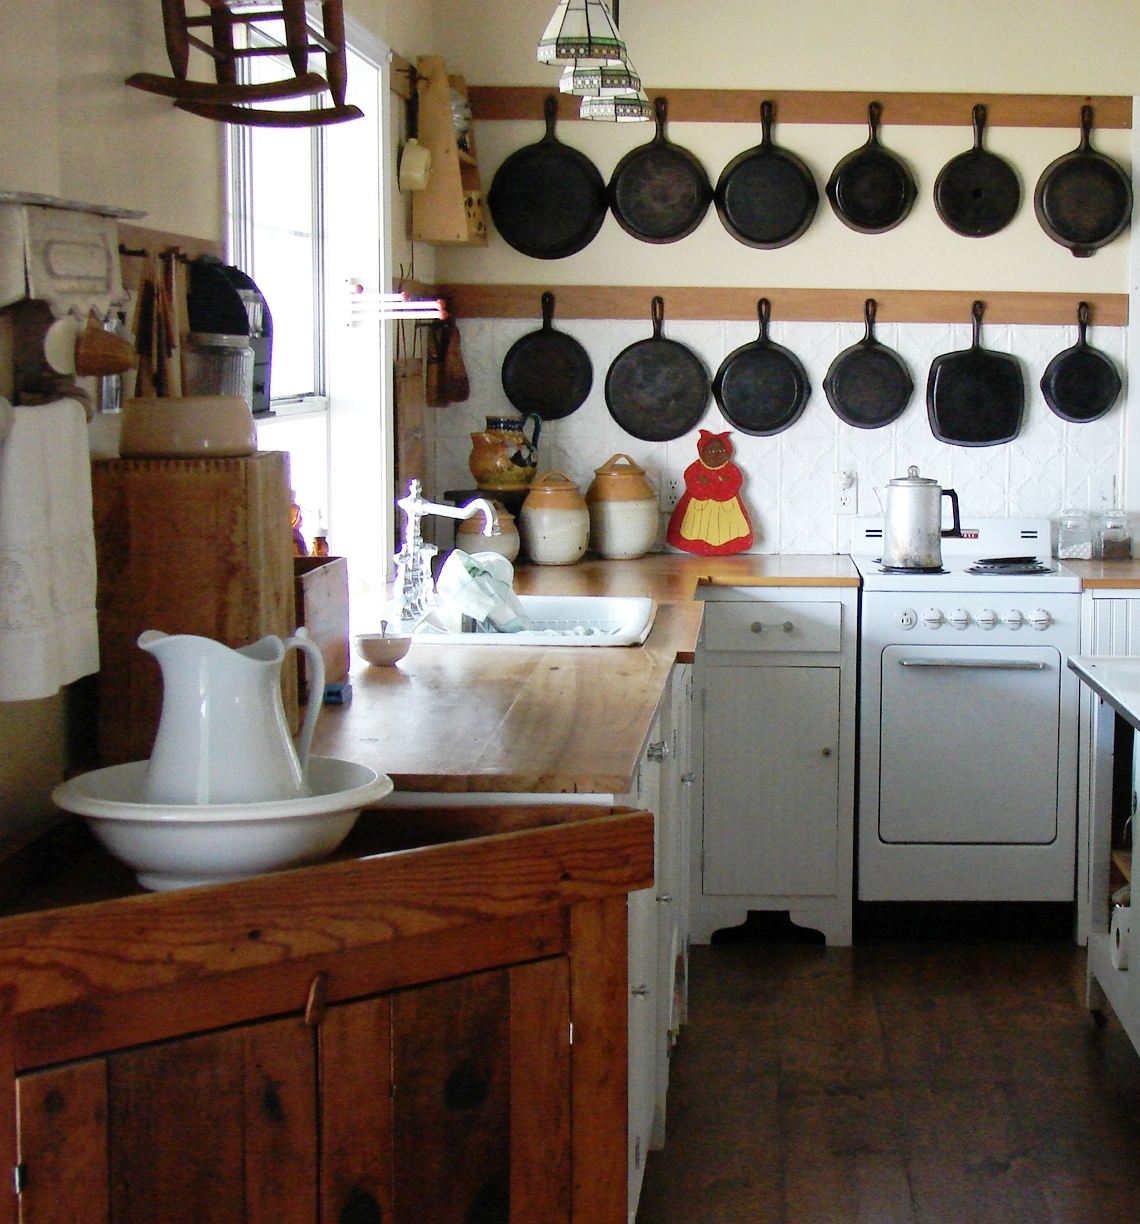 The Country Farm Home My Kitchen s Hidden Secrets